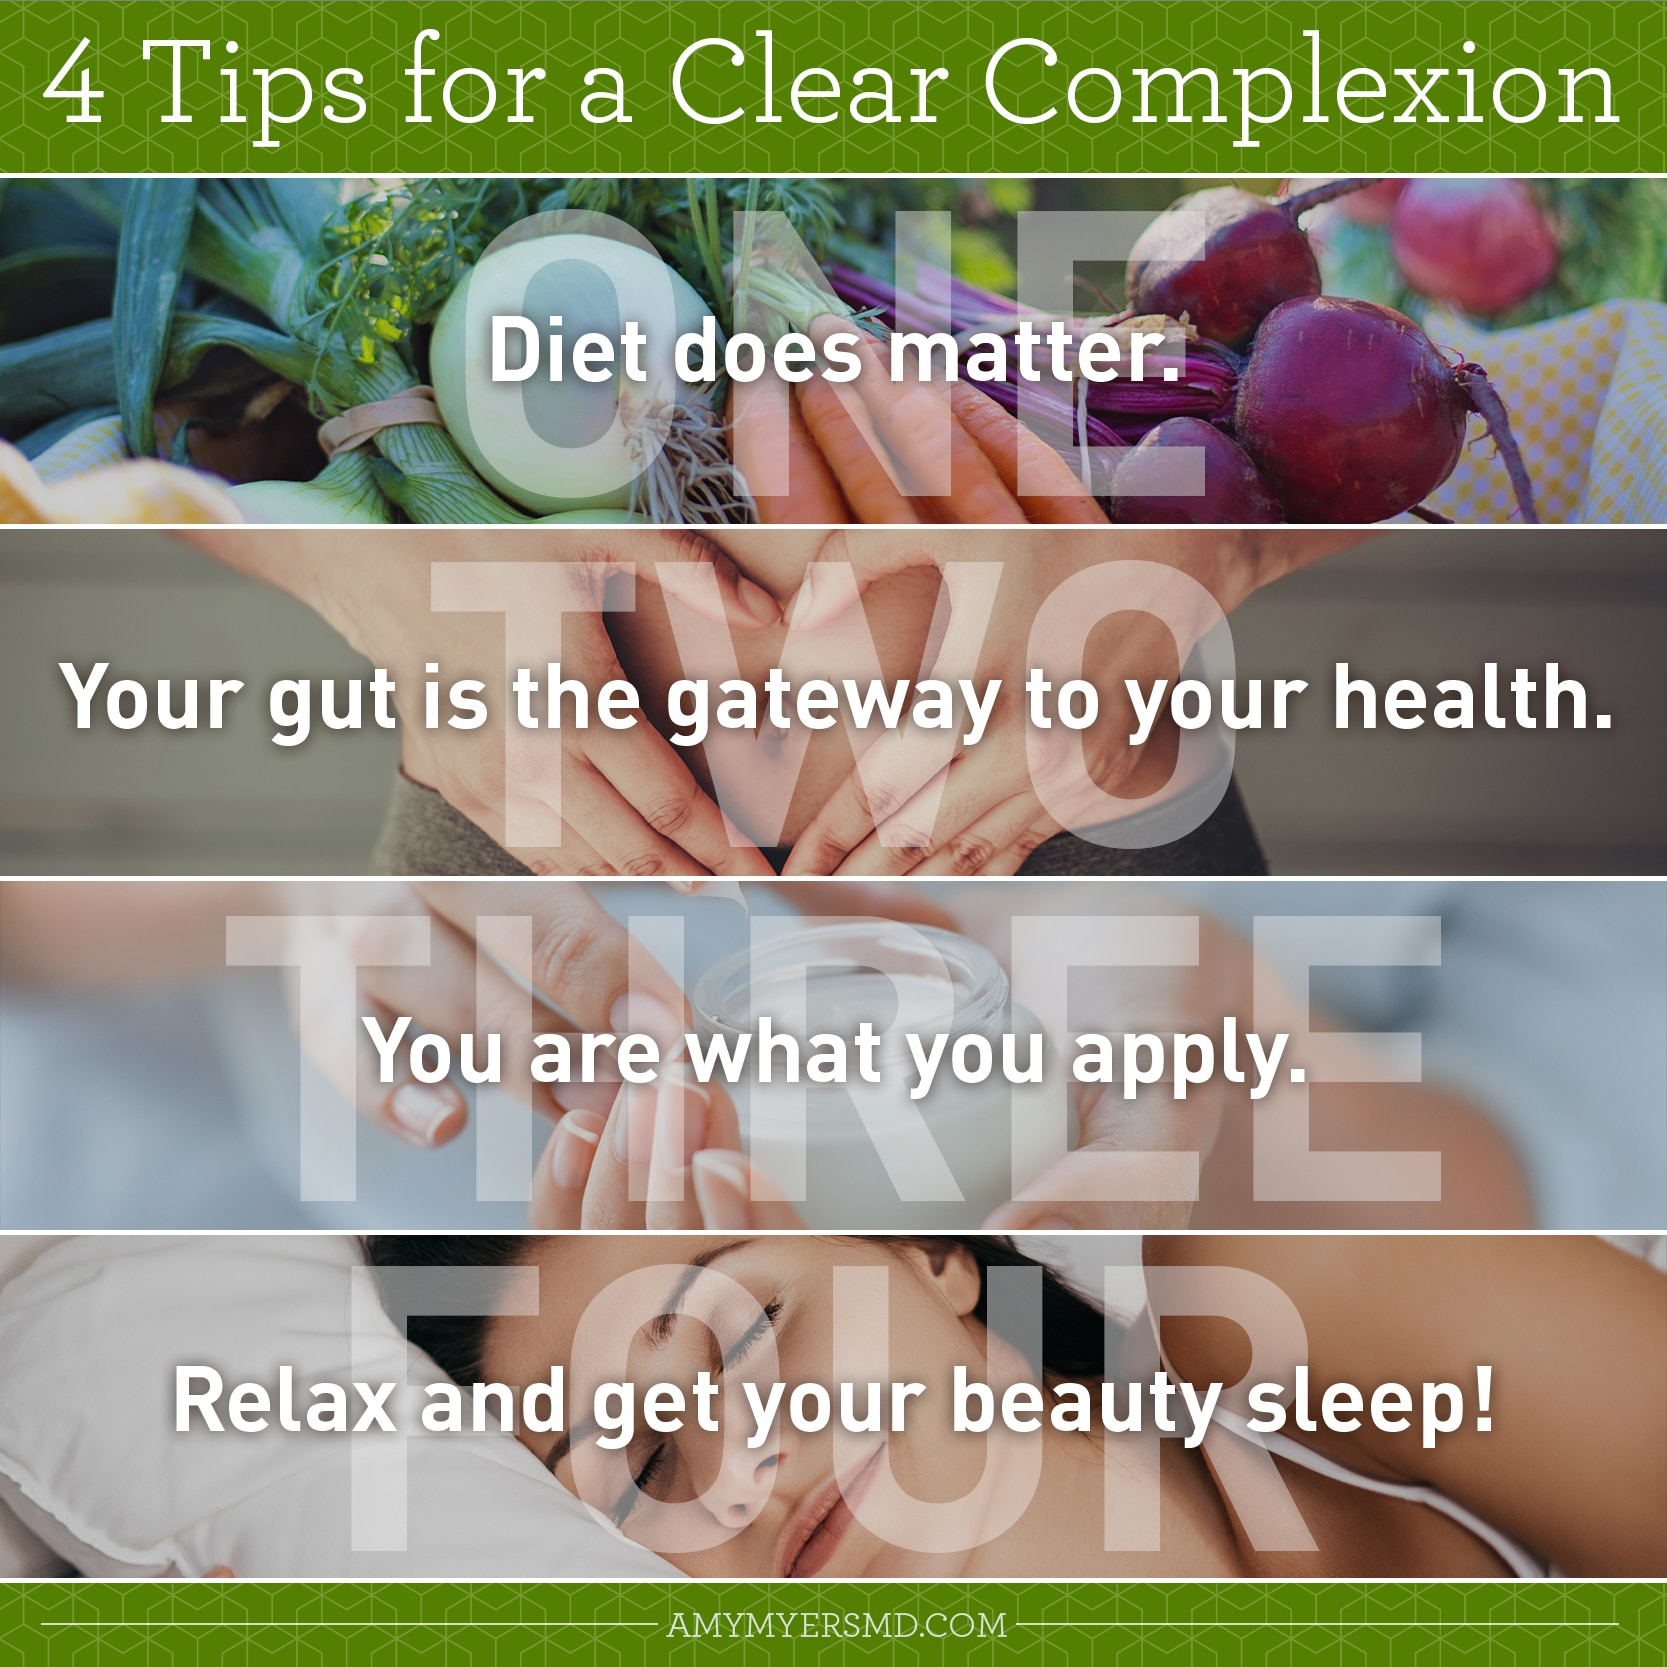 4 Tips for a Clear Complexion - Infographic - Amy Myers MD